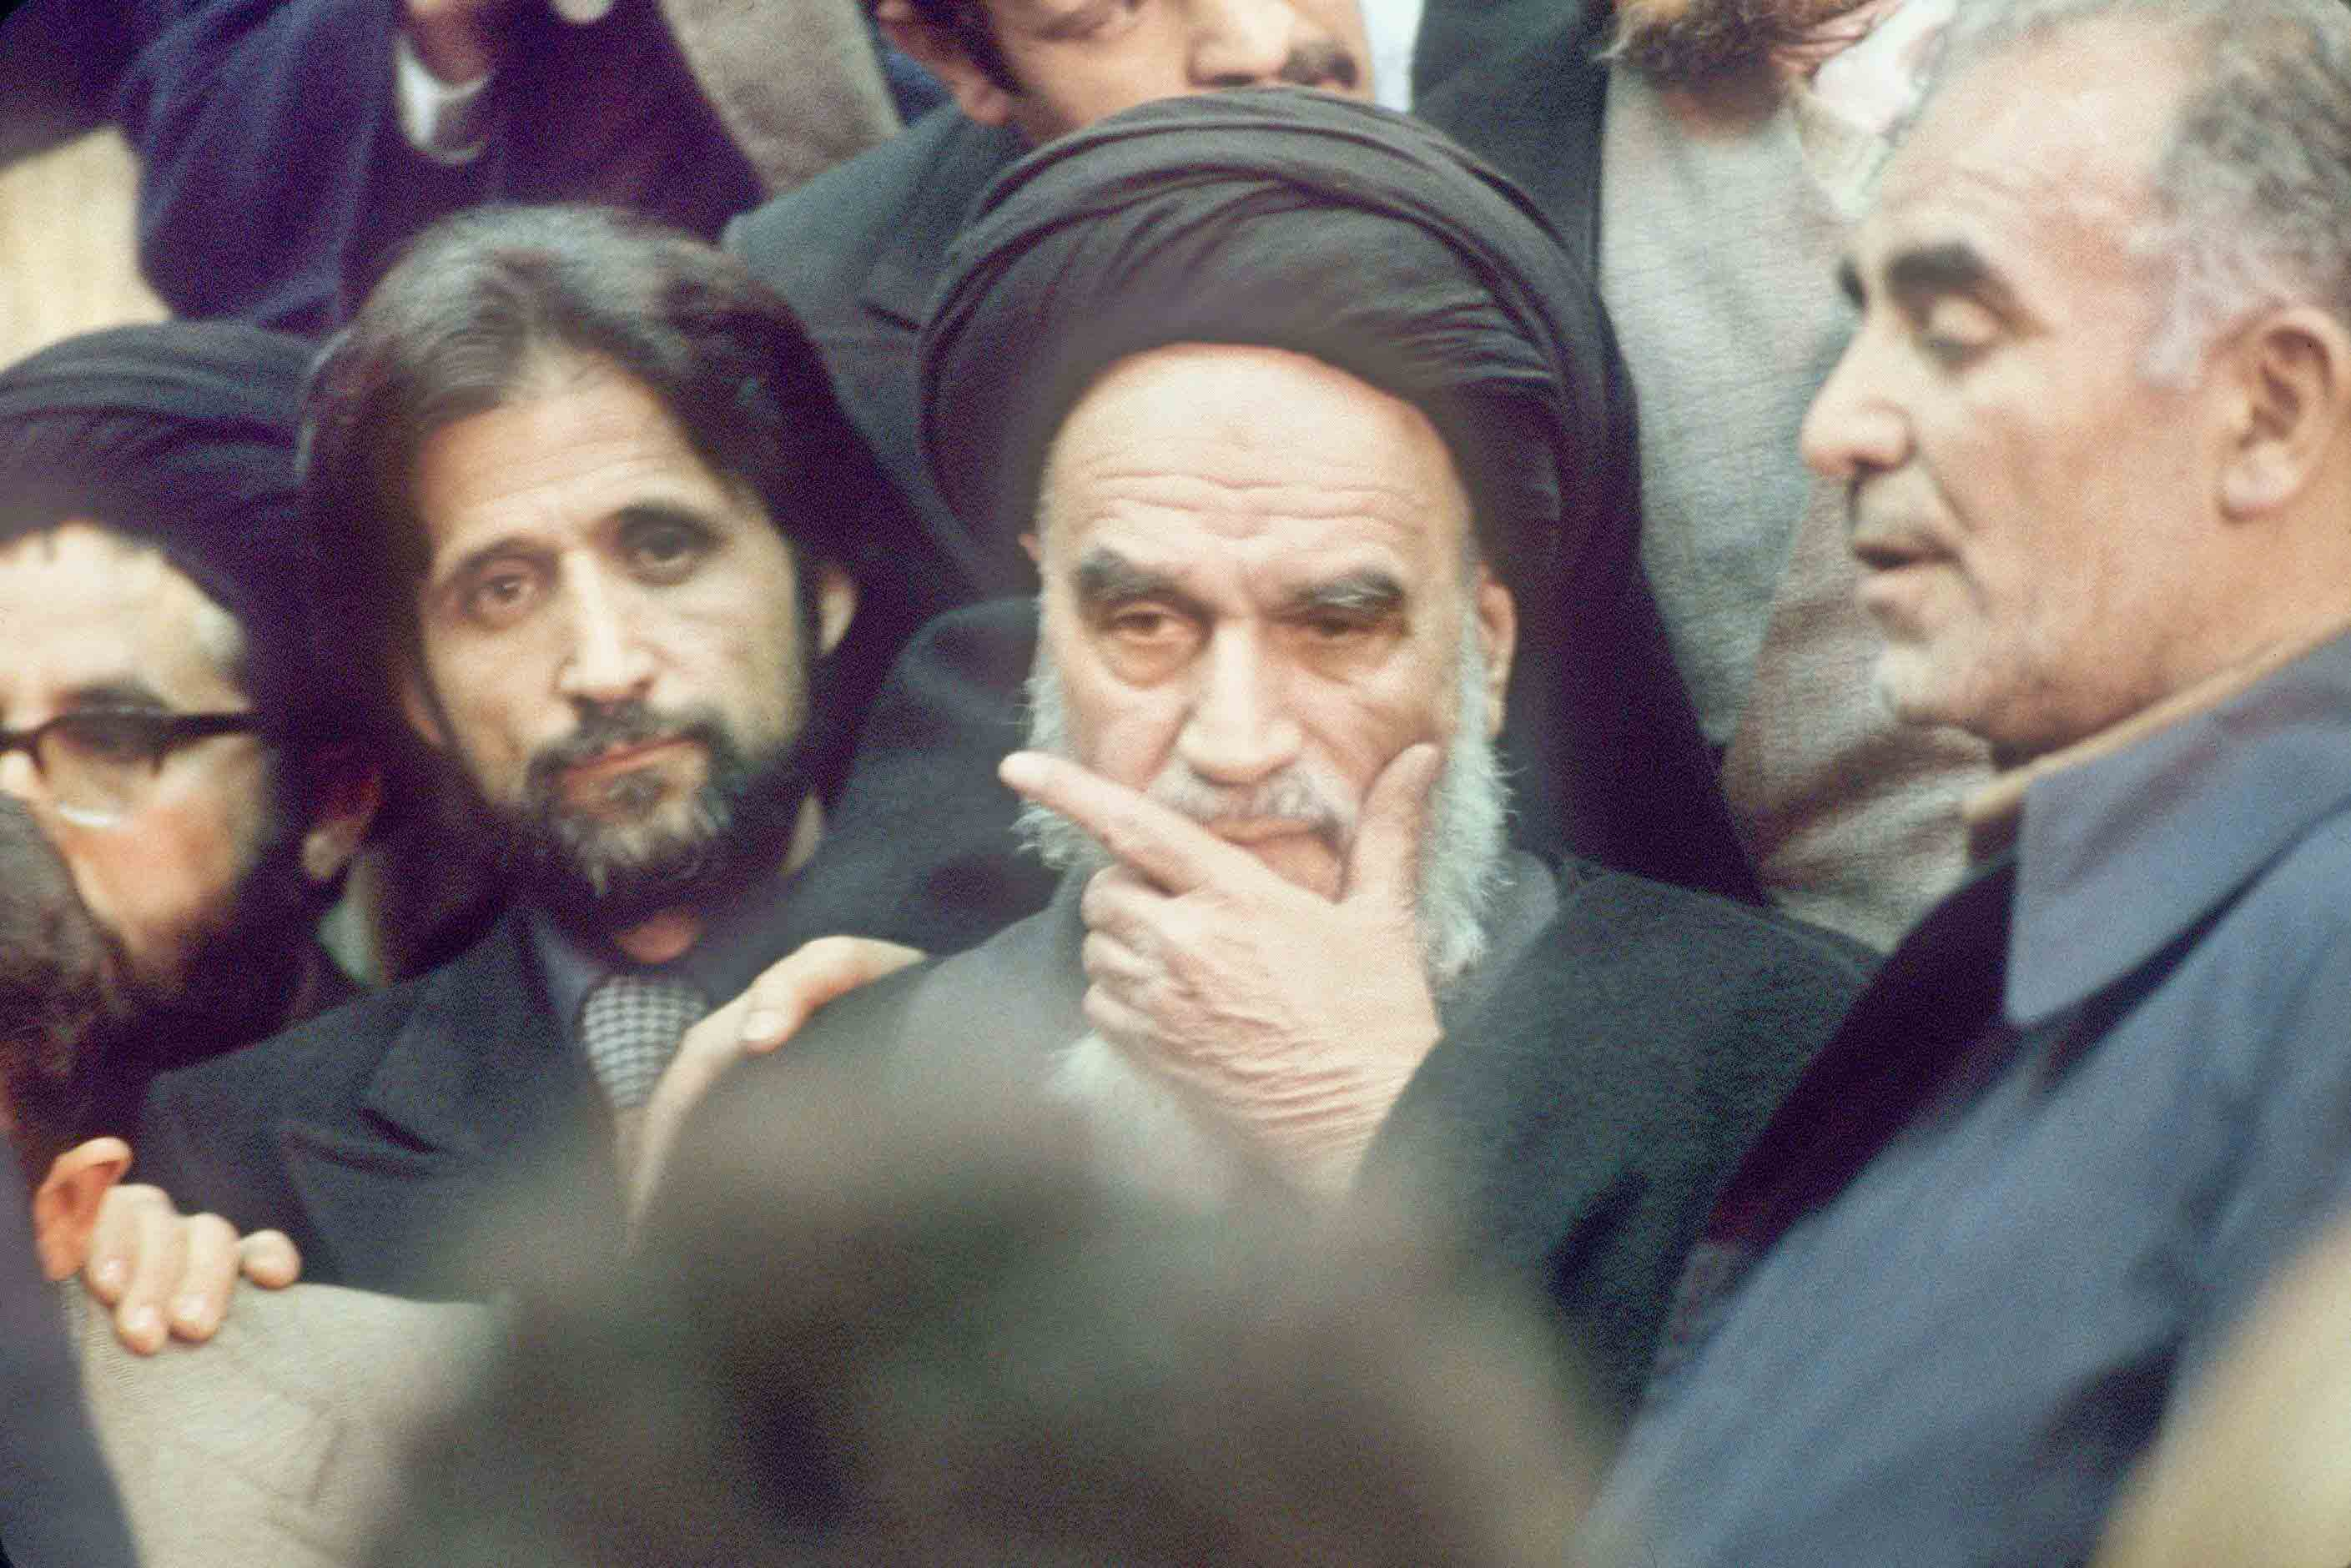 A hijacked revolution. A 1979 file picture shows Ayatollah Ruhollah Khomeini surrounded by his supporters in Tehran. (AFP)